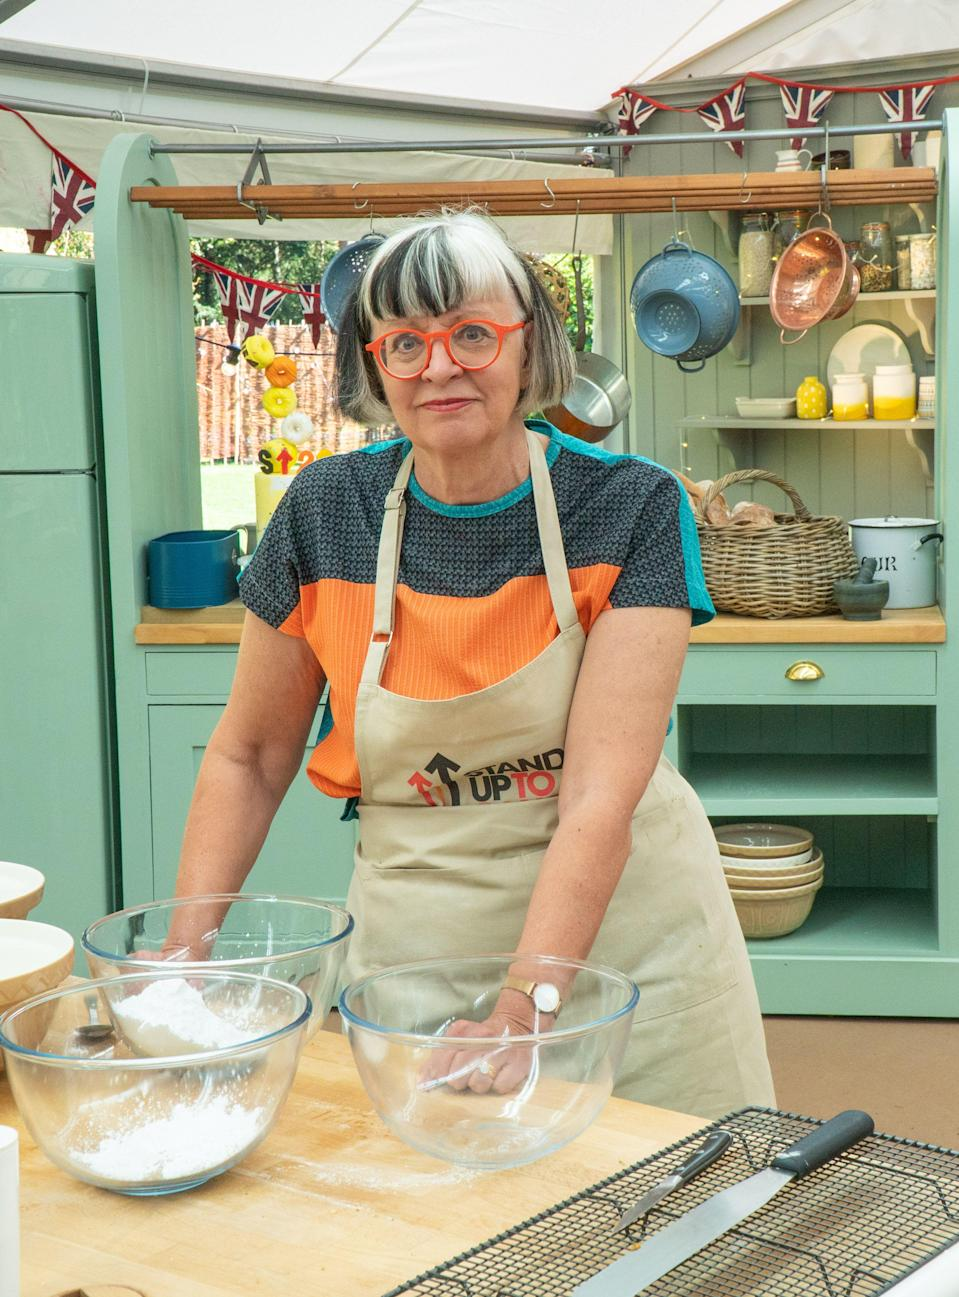 <p>Phillipa is a British psychotherapist and author, married to artist Grayson Berry and writer of The Book You Wish Your Parents Had Read.</p>